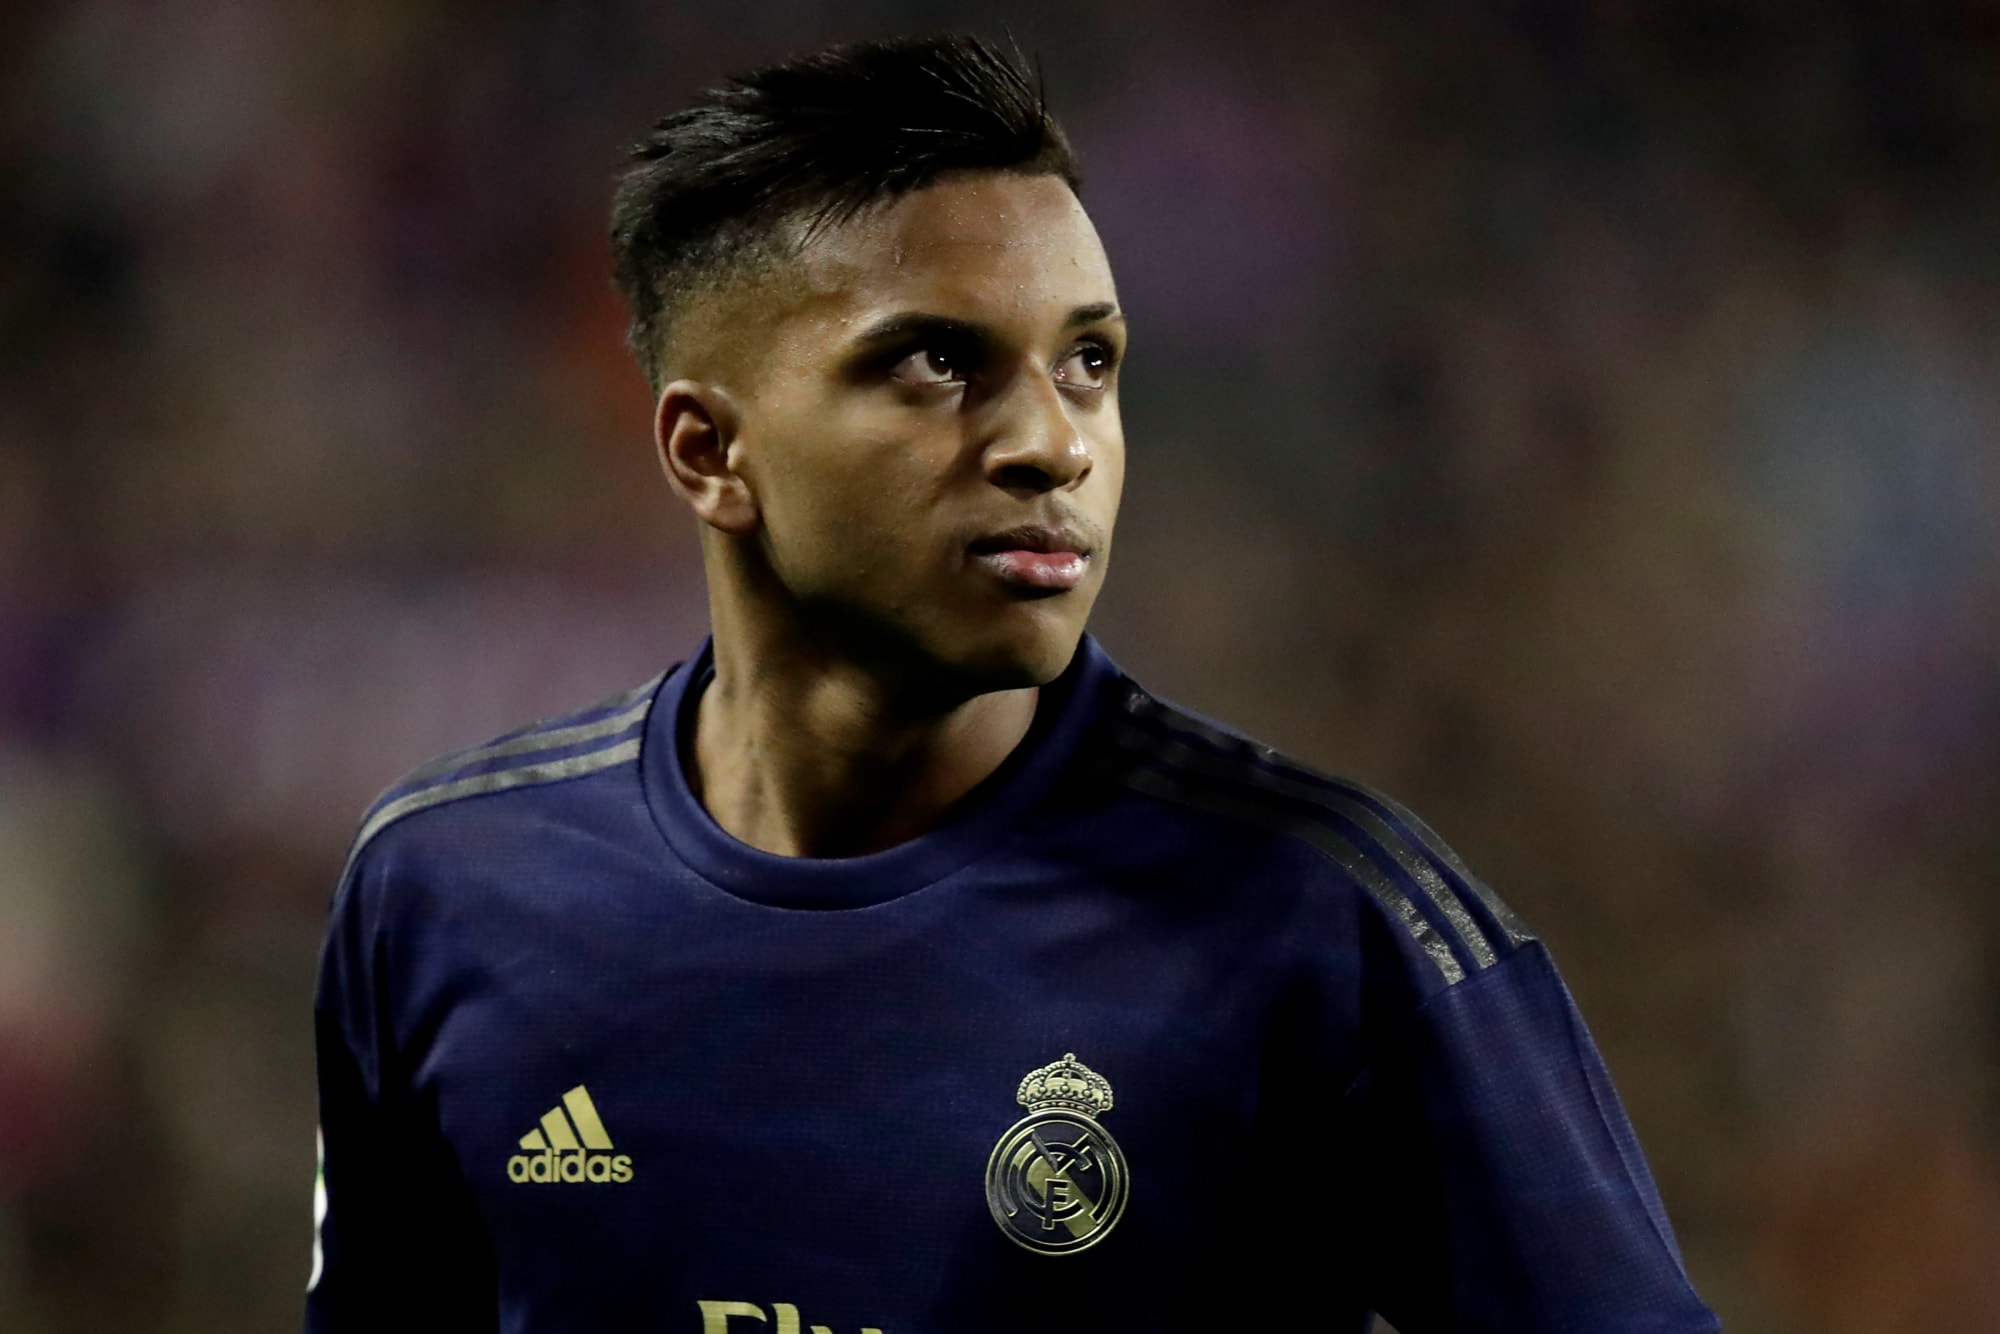 Real Madrid: The 3 most impactful young players of 2019-2020